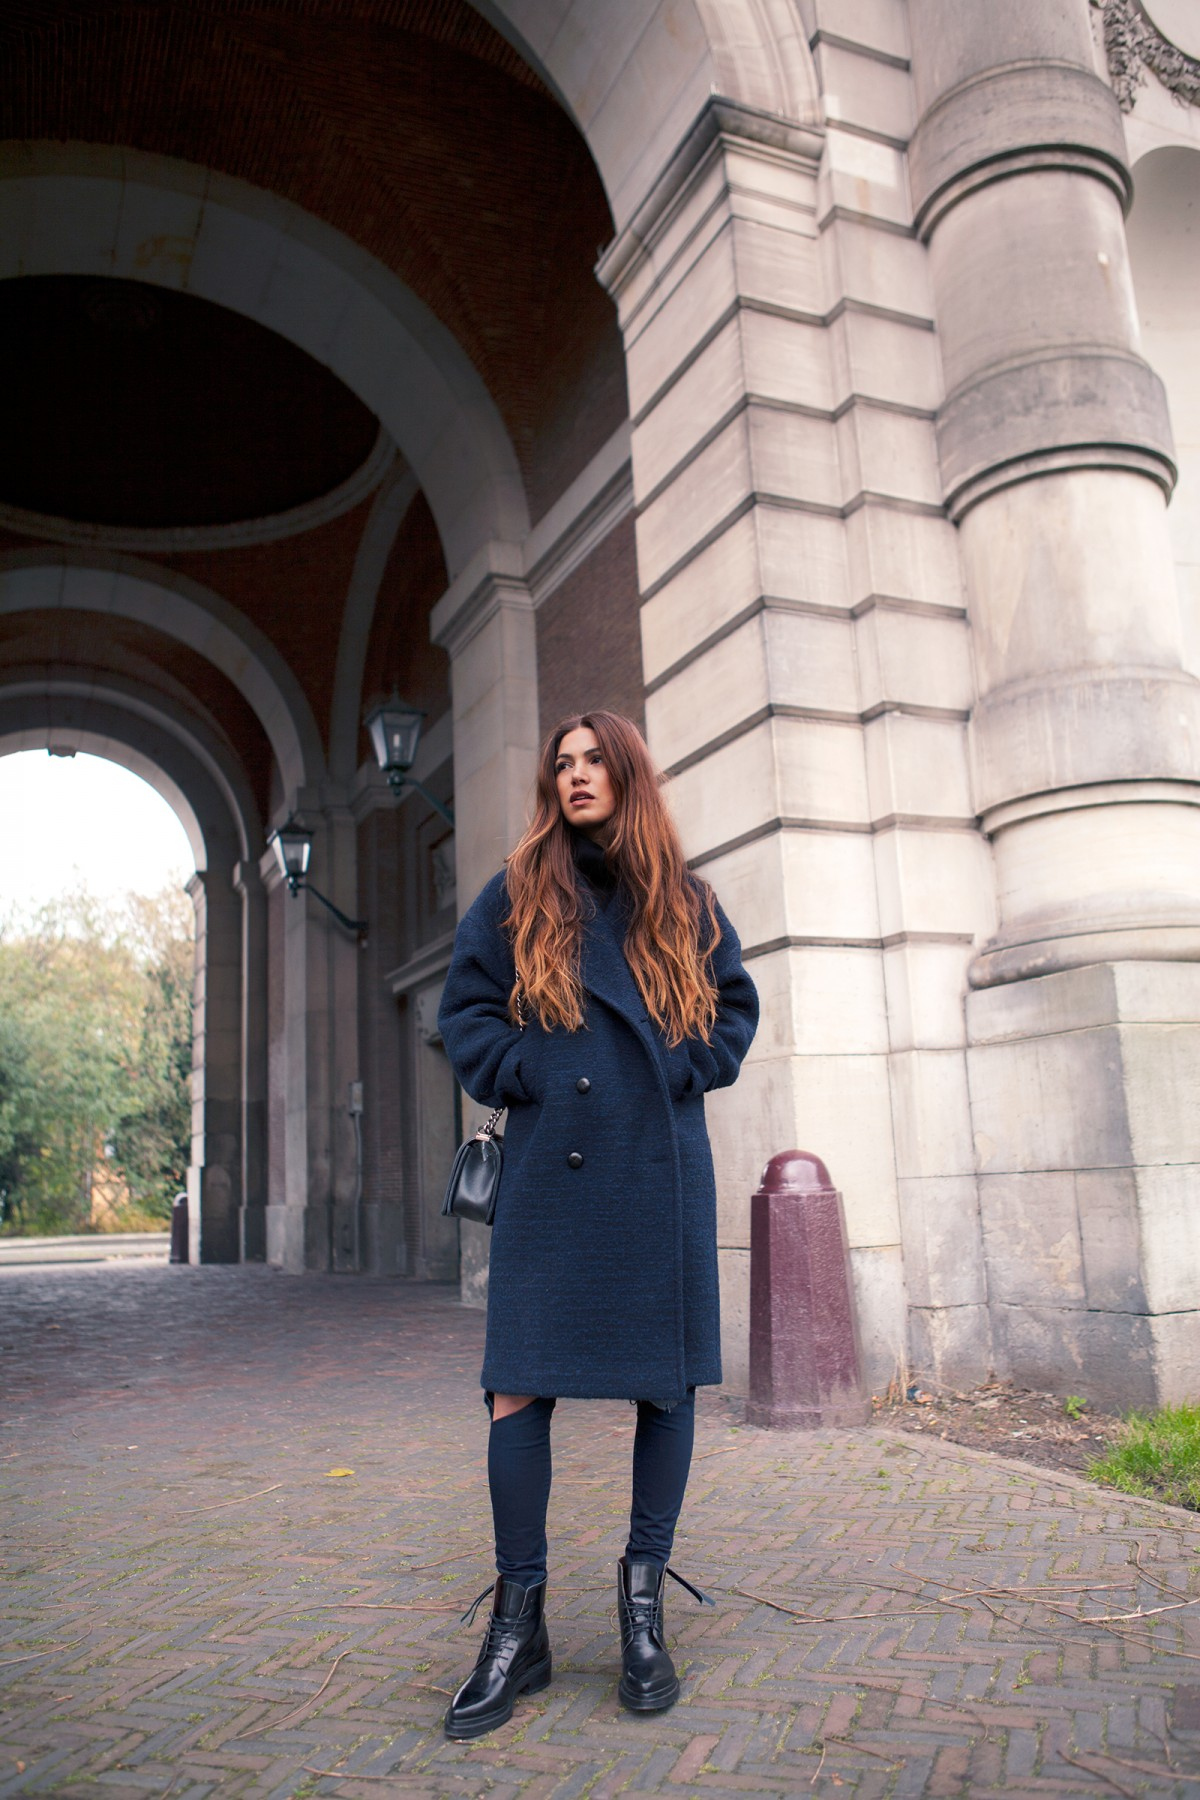 Outfits For Autumn: Negin Mirsalehi is wearing a coat from Naomi, jeans from J Brand and the boots are from Acne